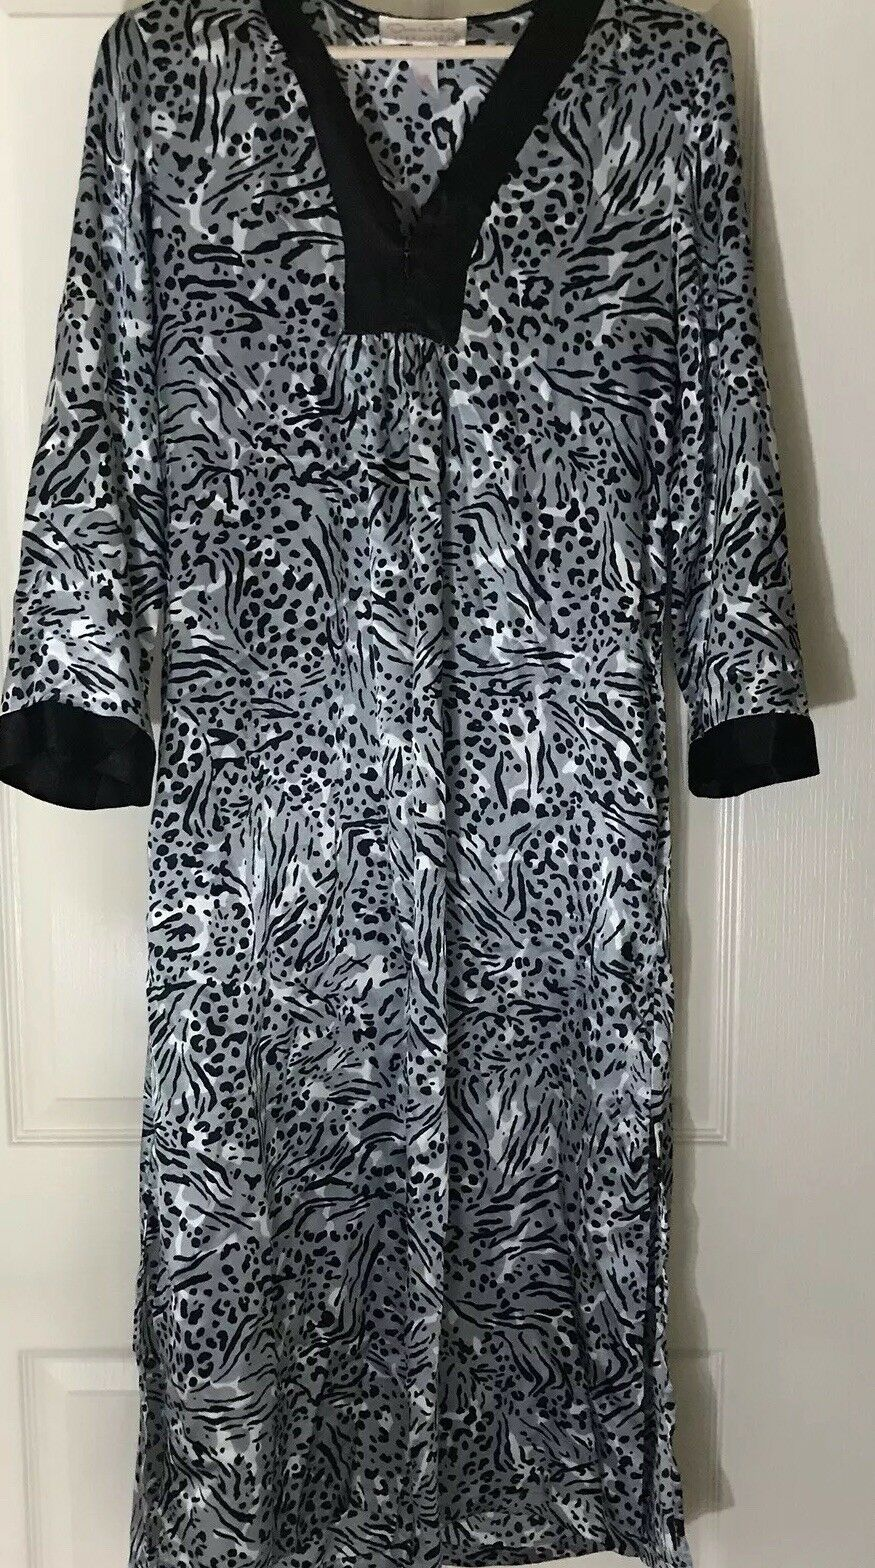 Oscar De La Renta Pink Label Animal Print Nightgown Size Small